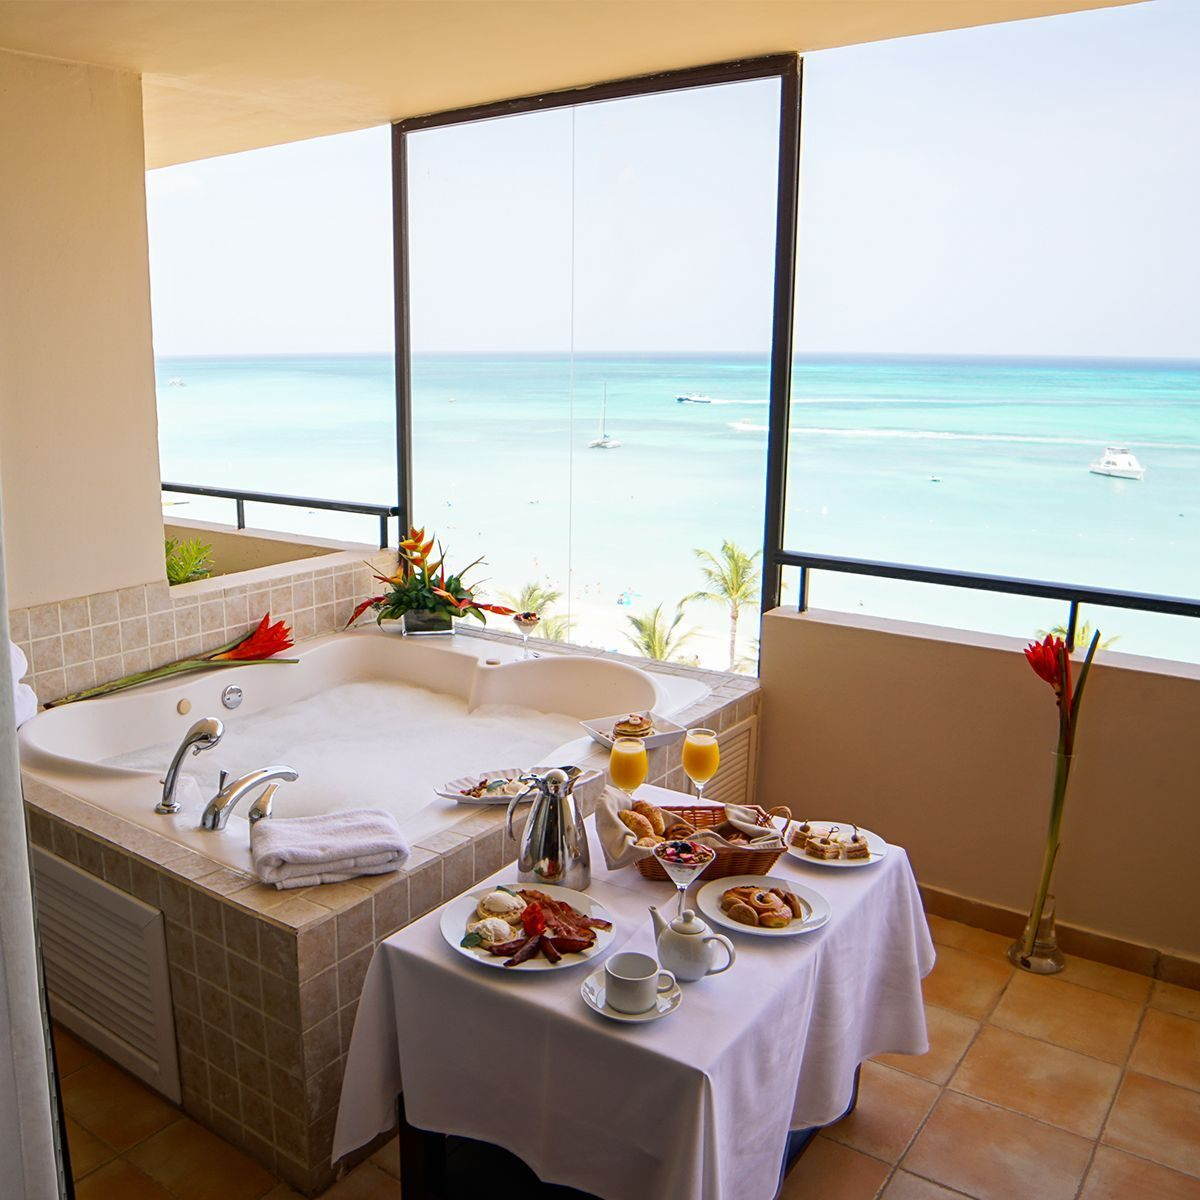 Hotel in Aruba with room service